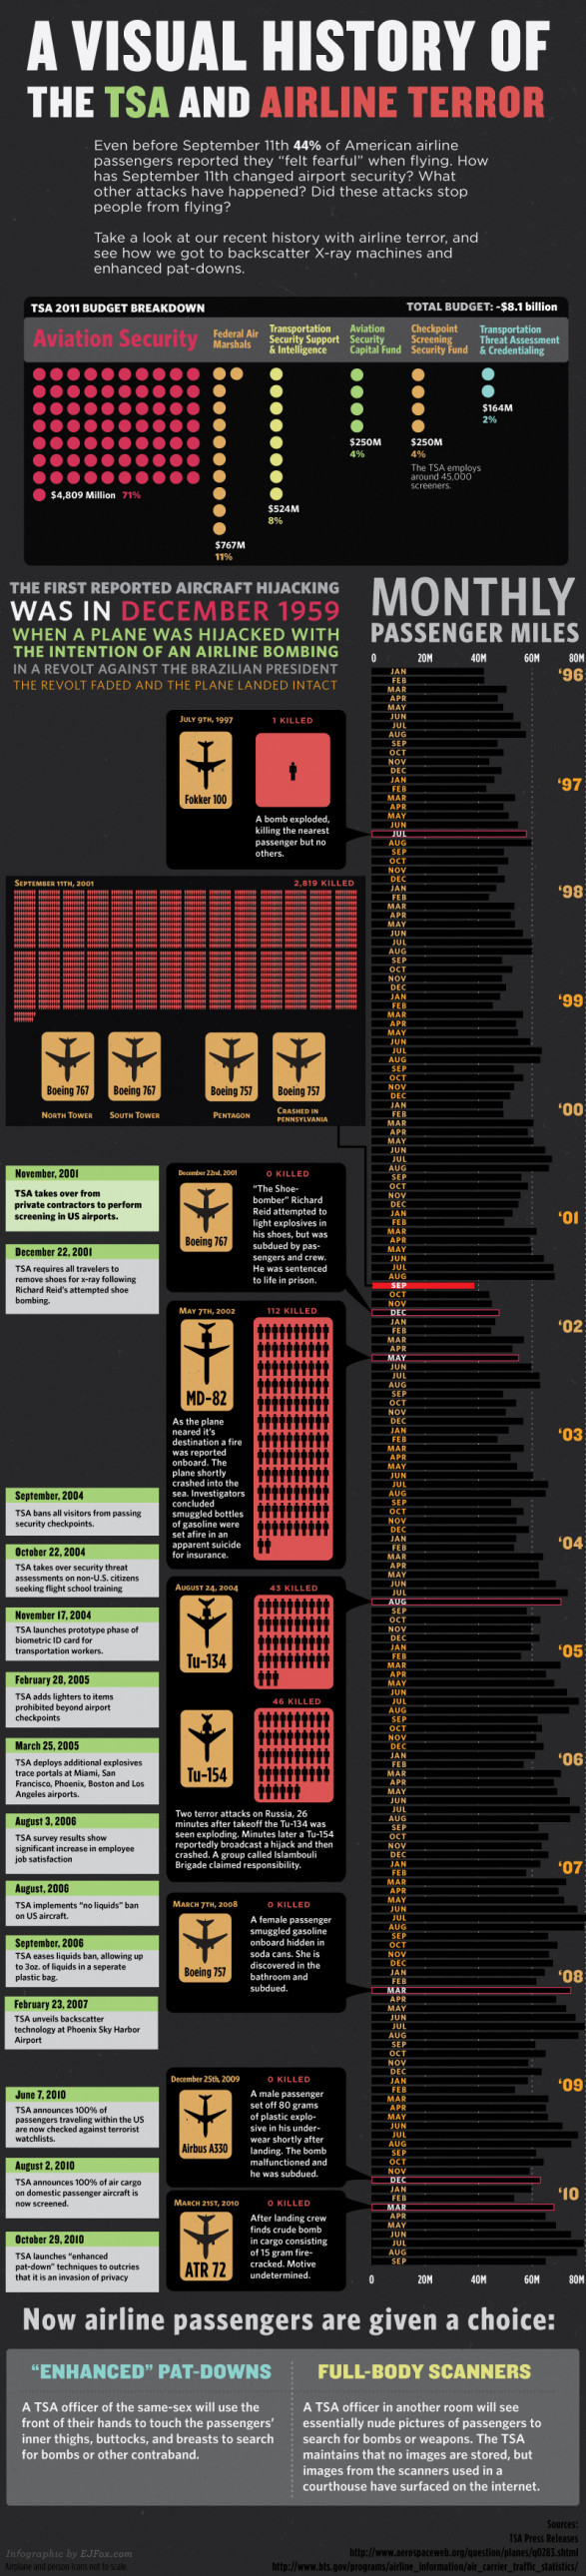 A Visual History of the TSA and Airline Terror